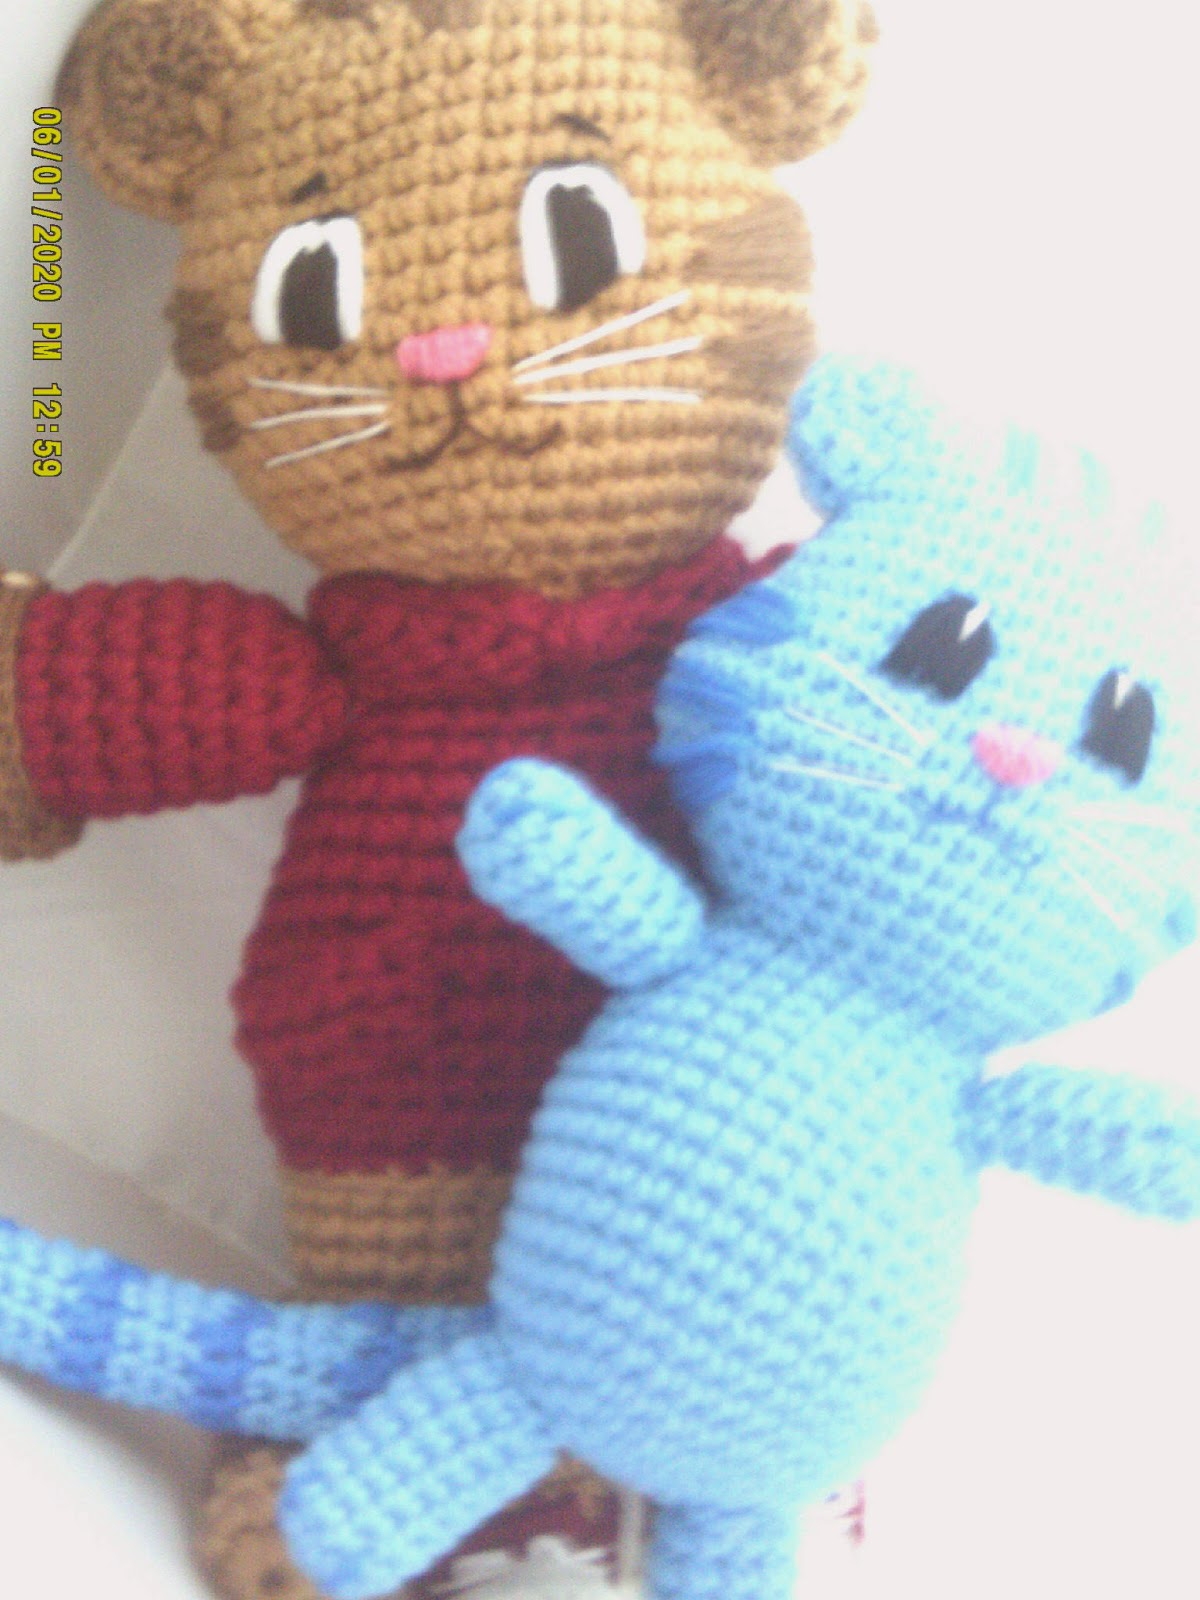 ... to finally make a Daniel tiger. (While I m still on this craft journey  you are still welcome to follow along to watch me rise or fall a99d0807d96